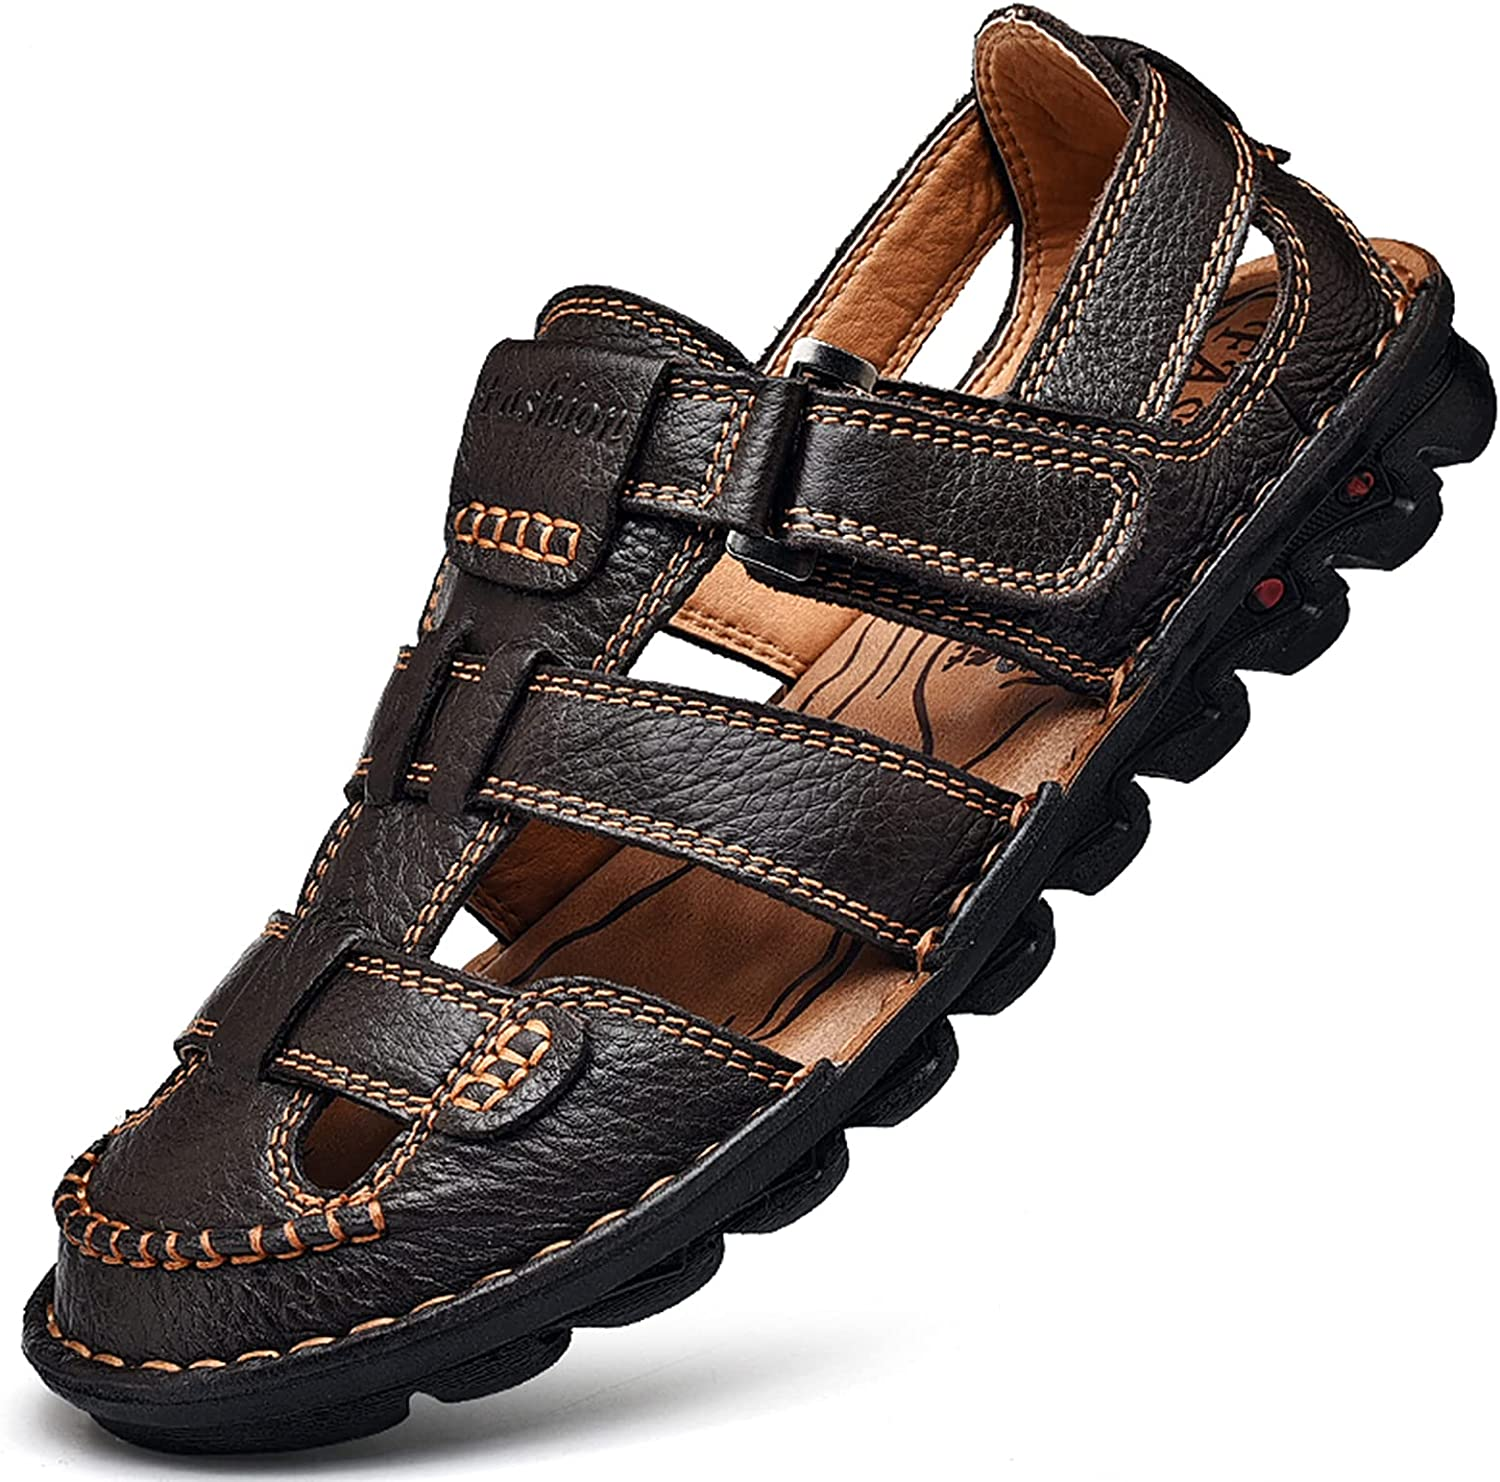 JIONS Mens Ranking TOP6 Easy-to-use Closed Toe Leather Men's Summer Sandals Fish Outdoor